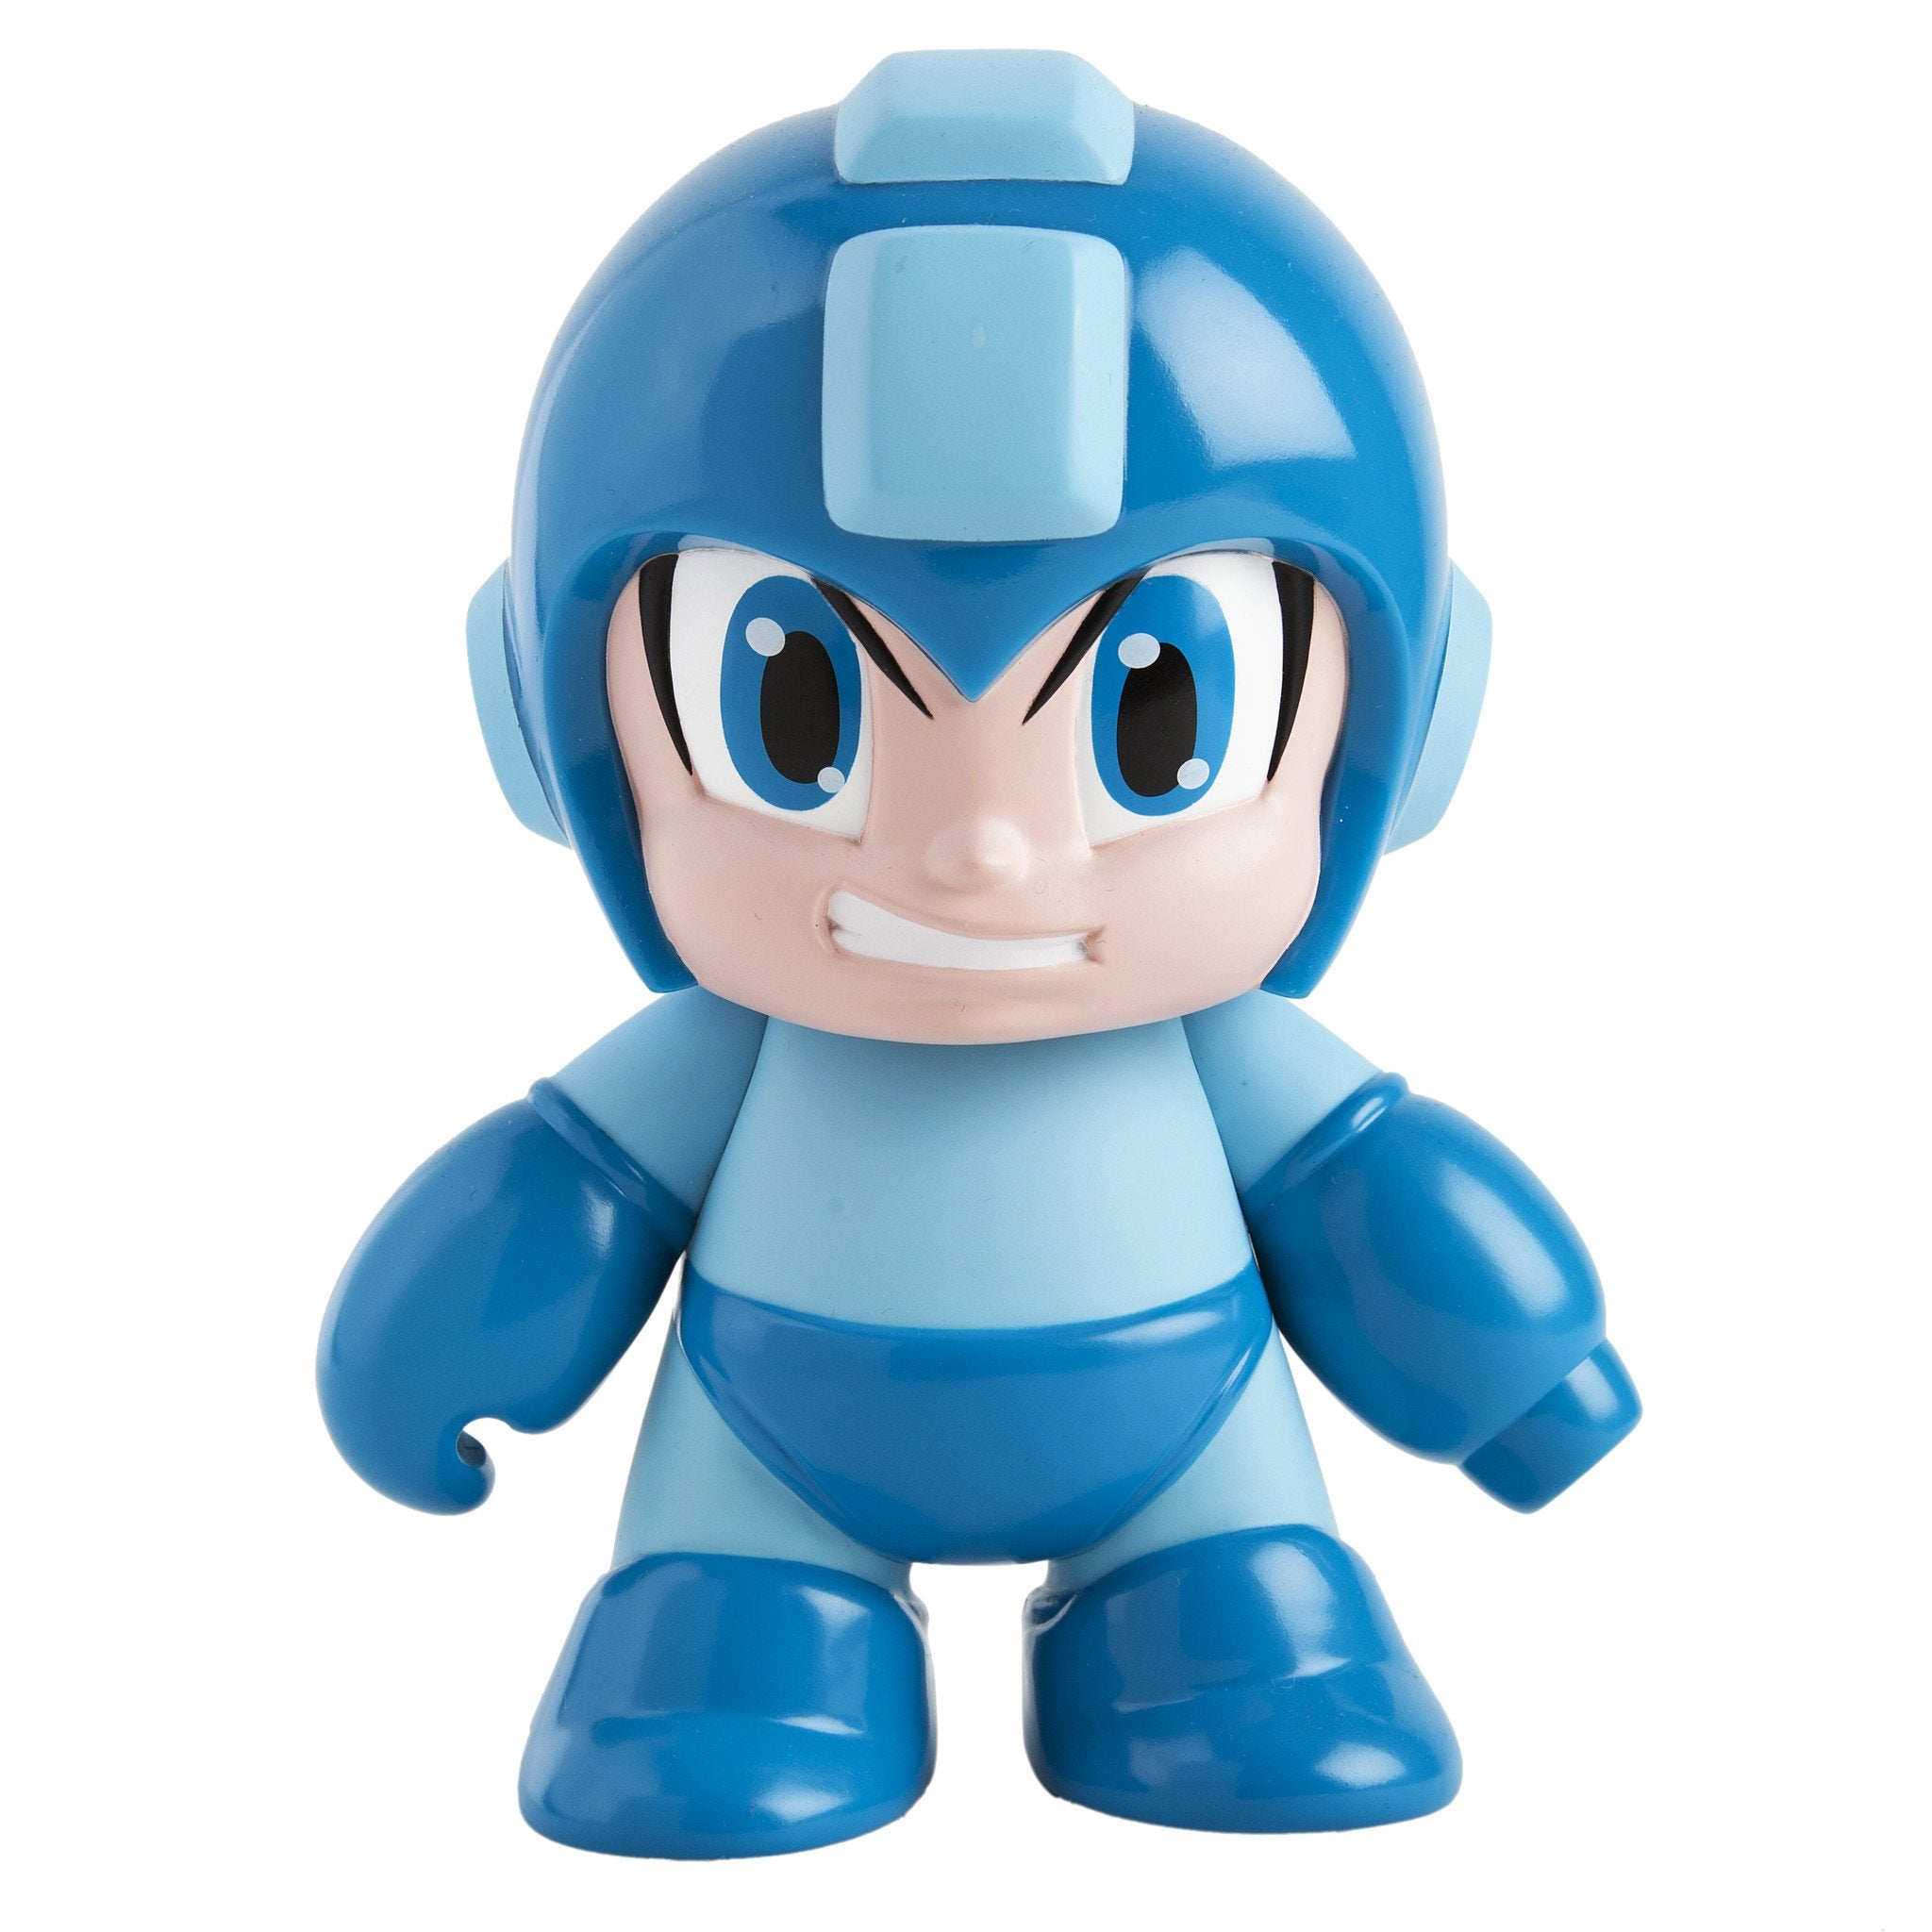 Mega Man 7 Quot Medium Figure Kidrobot